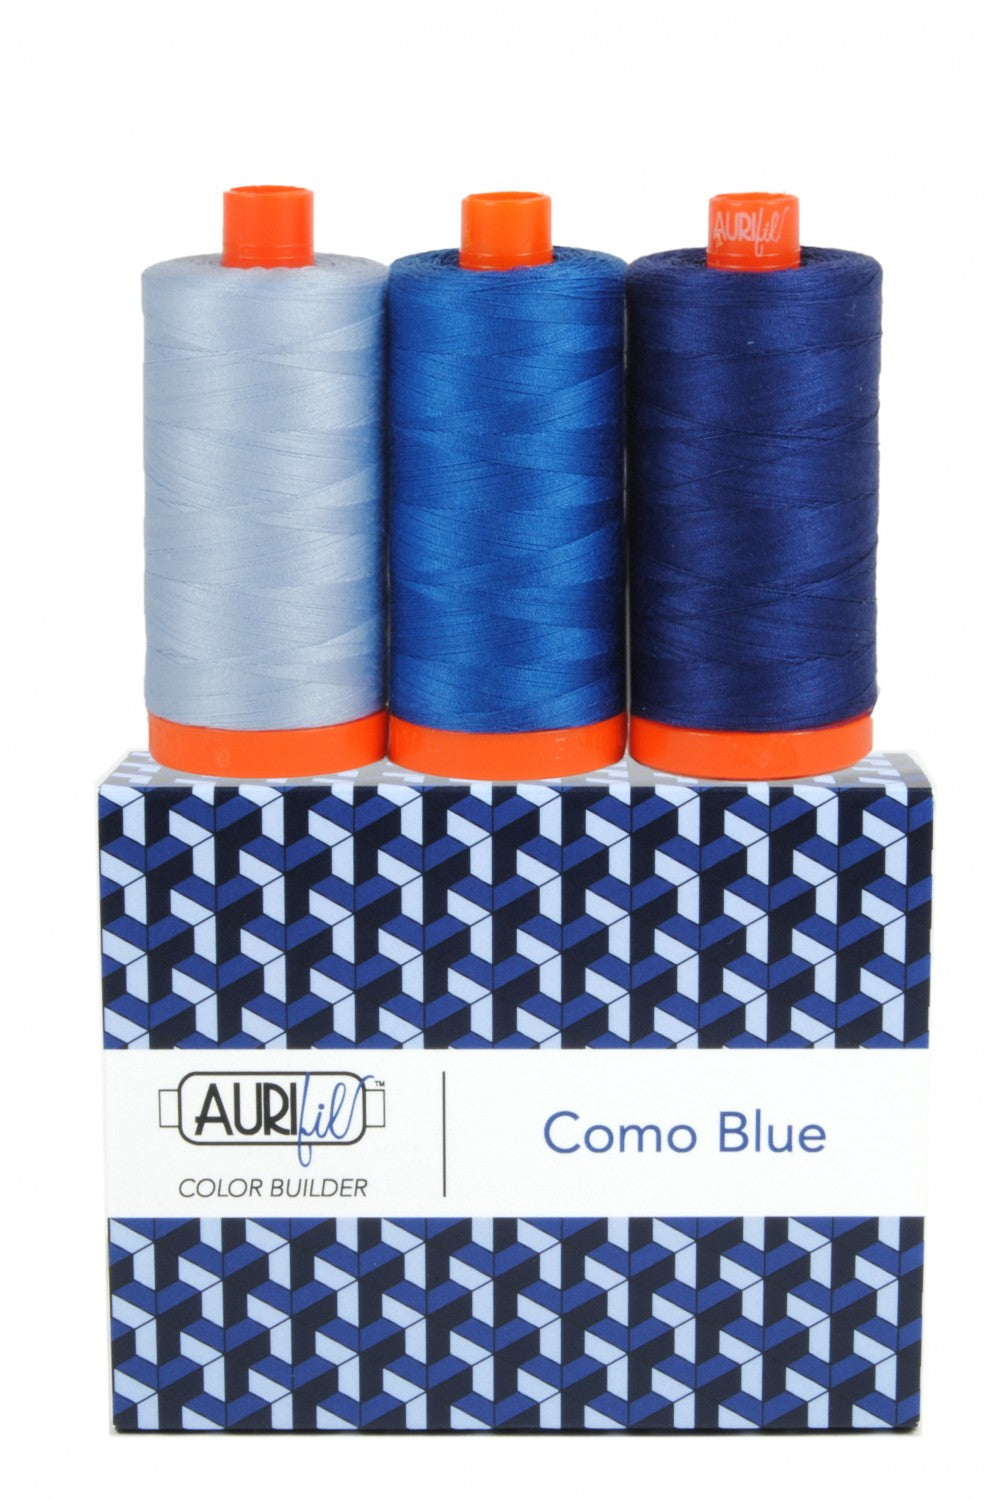 Aurifil 50wt - Color Builder